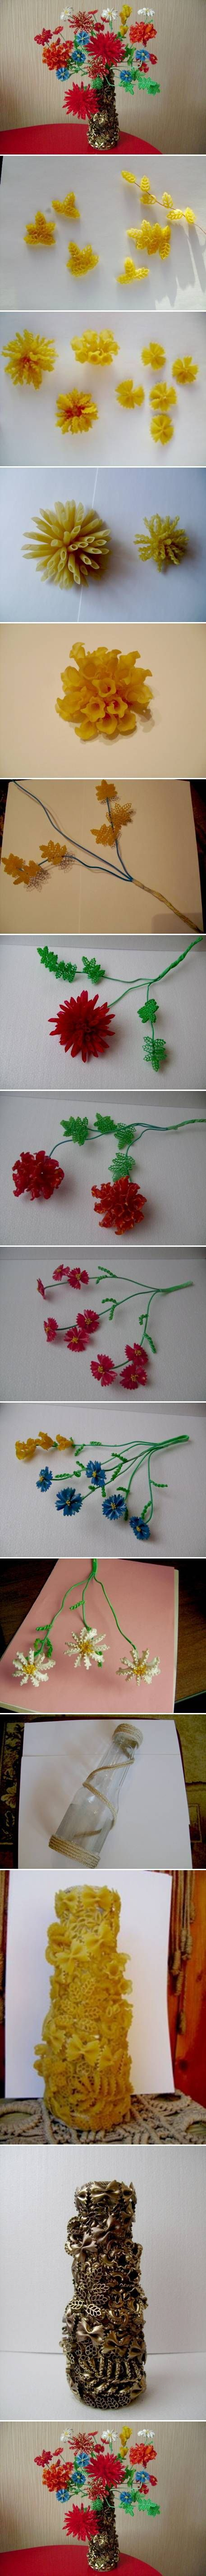 DIY Pasta Flowers and Vase DIY Projects